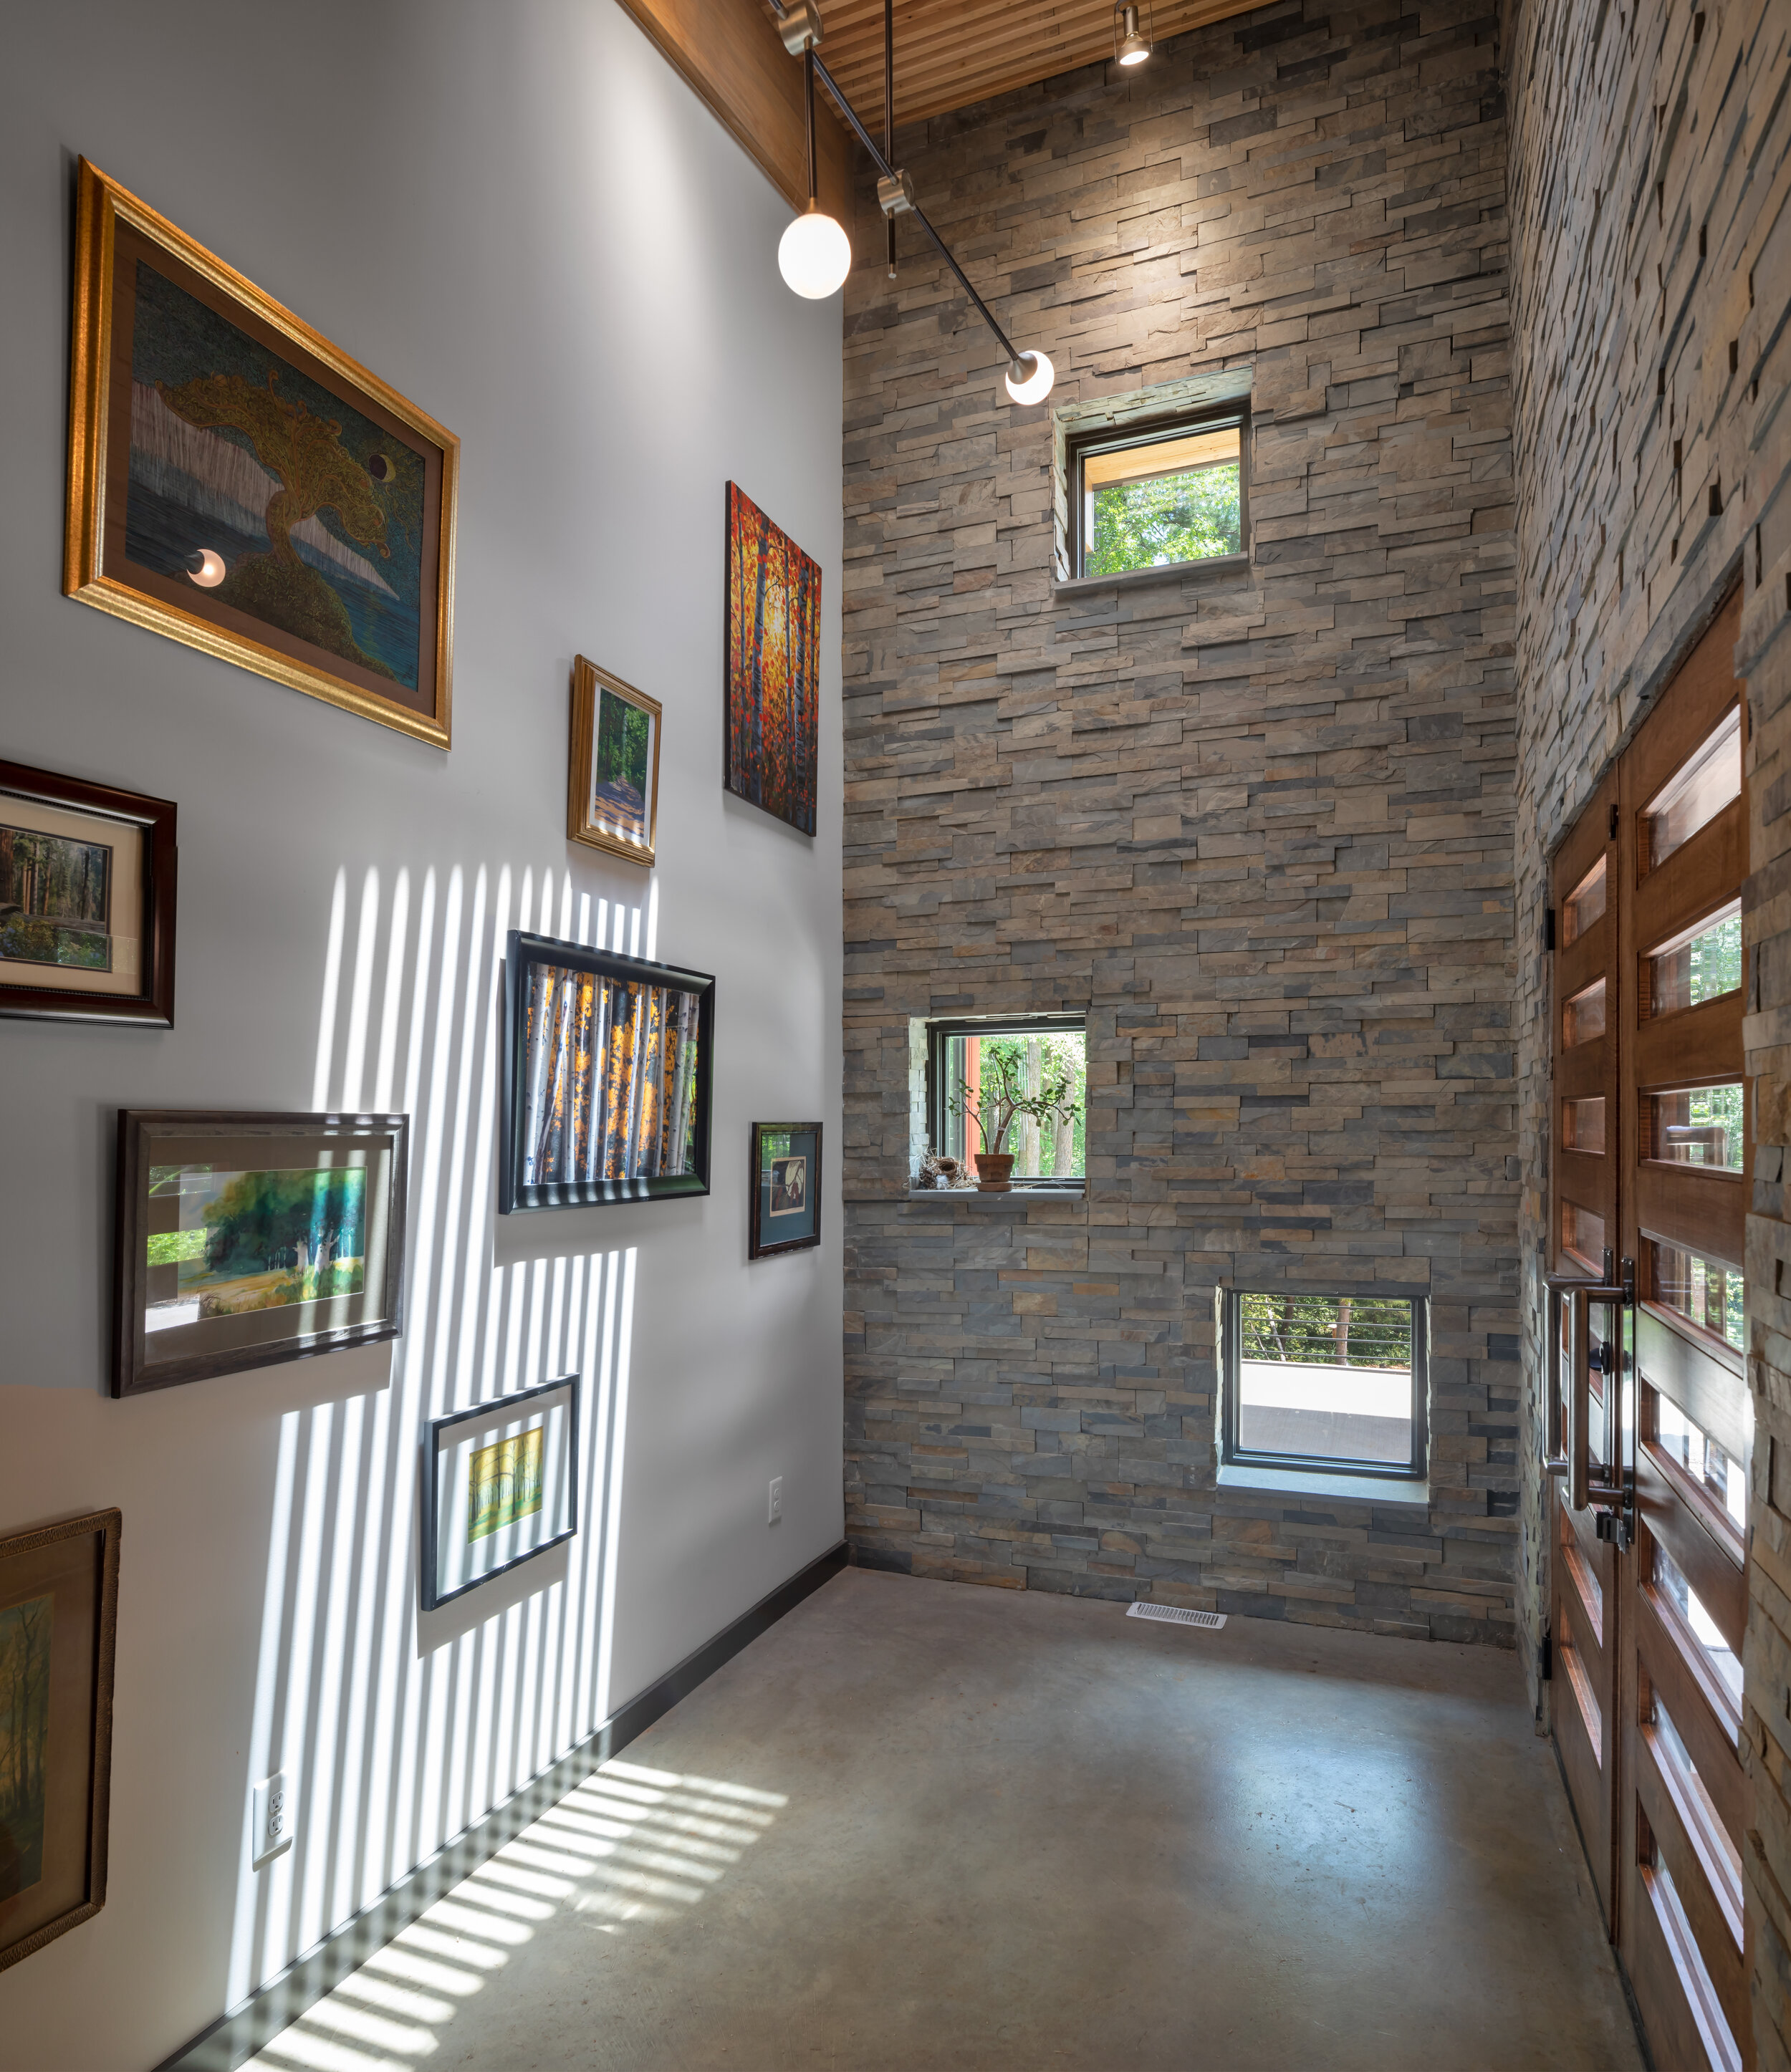 Foyer details - polished concrete floor, stone walls, skylight, art gallery wall and vaulted ceiling.